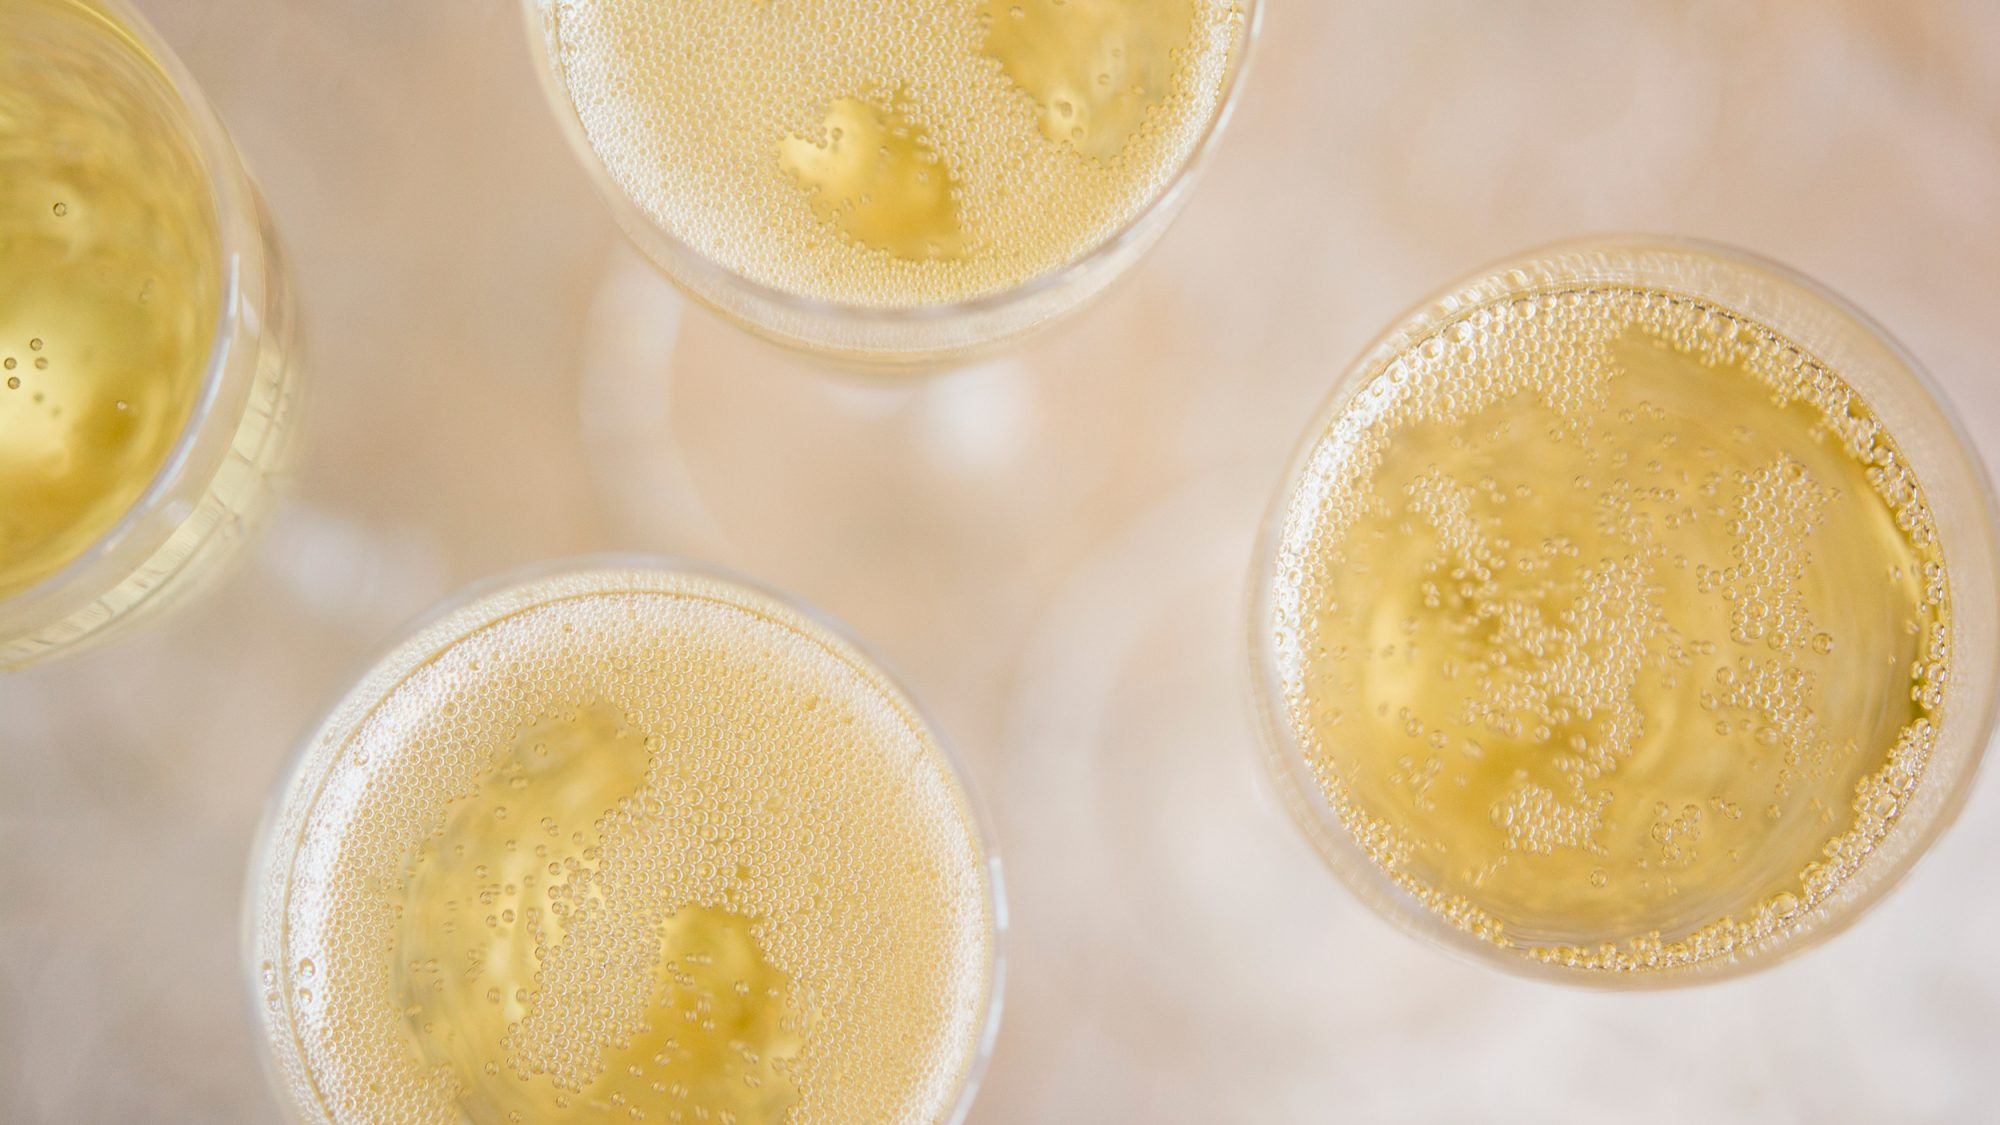 The Differences Between Champagne, Prosecco and Cava